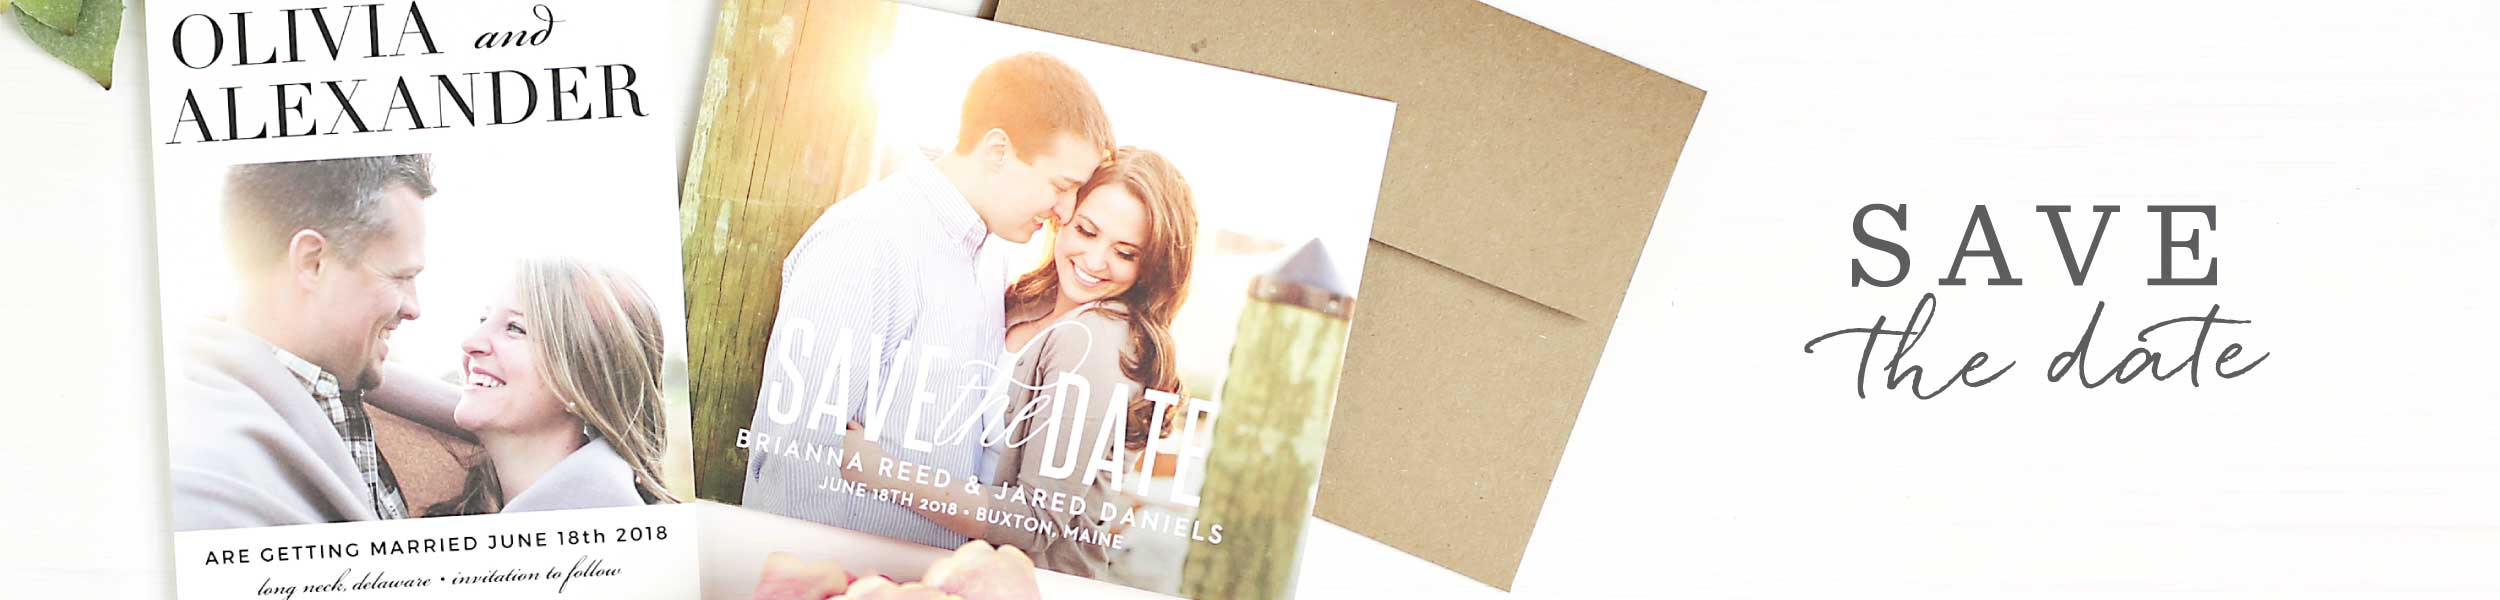 Save The Date Printing Upload Your Own Design - Design your own save the date template